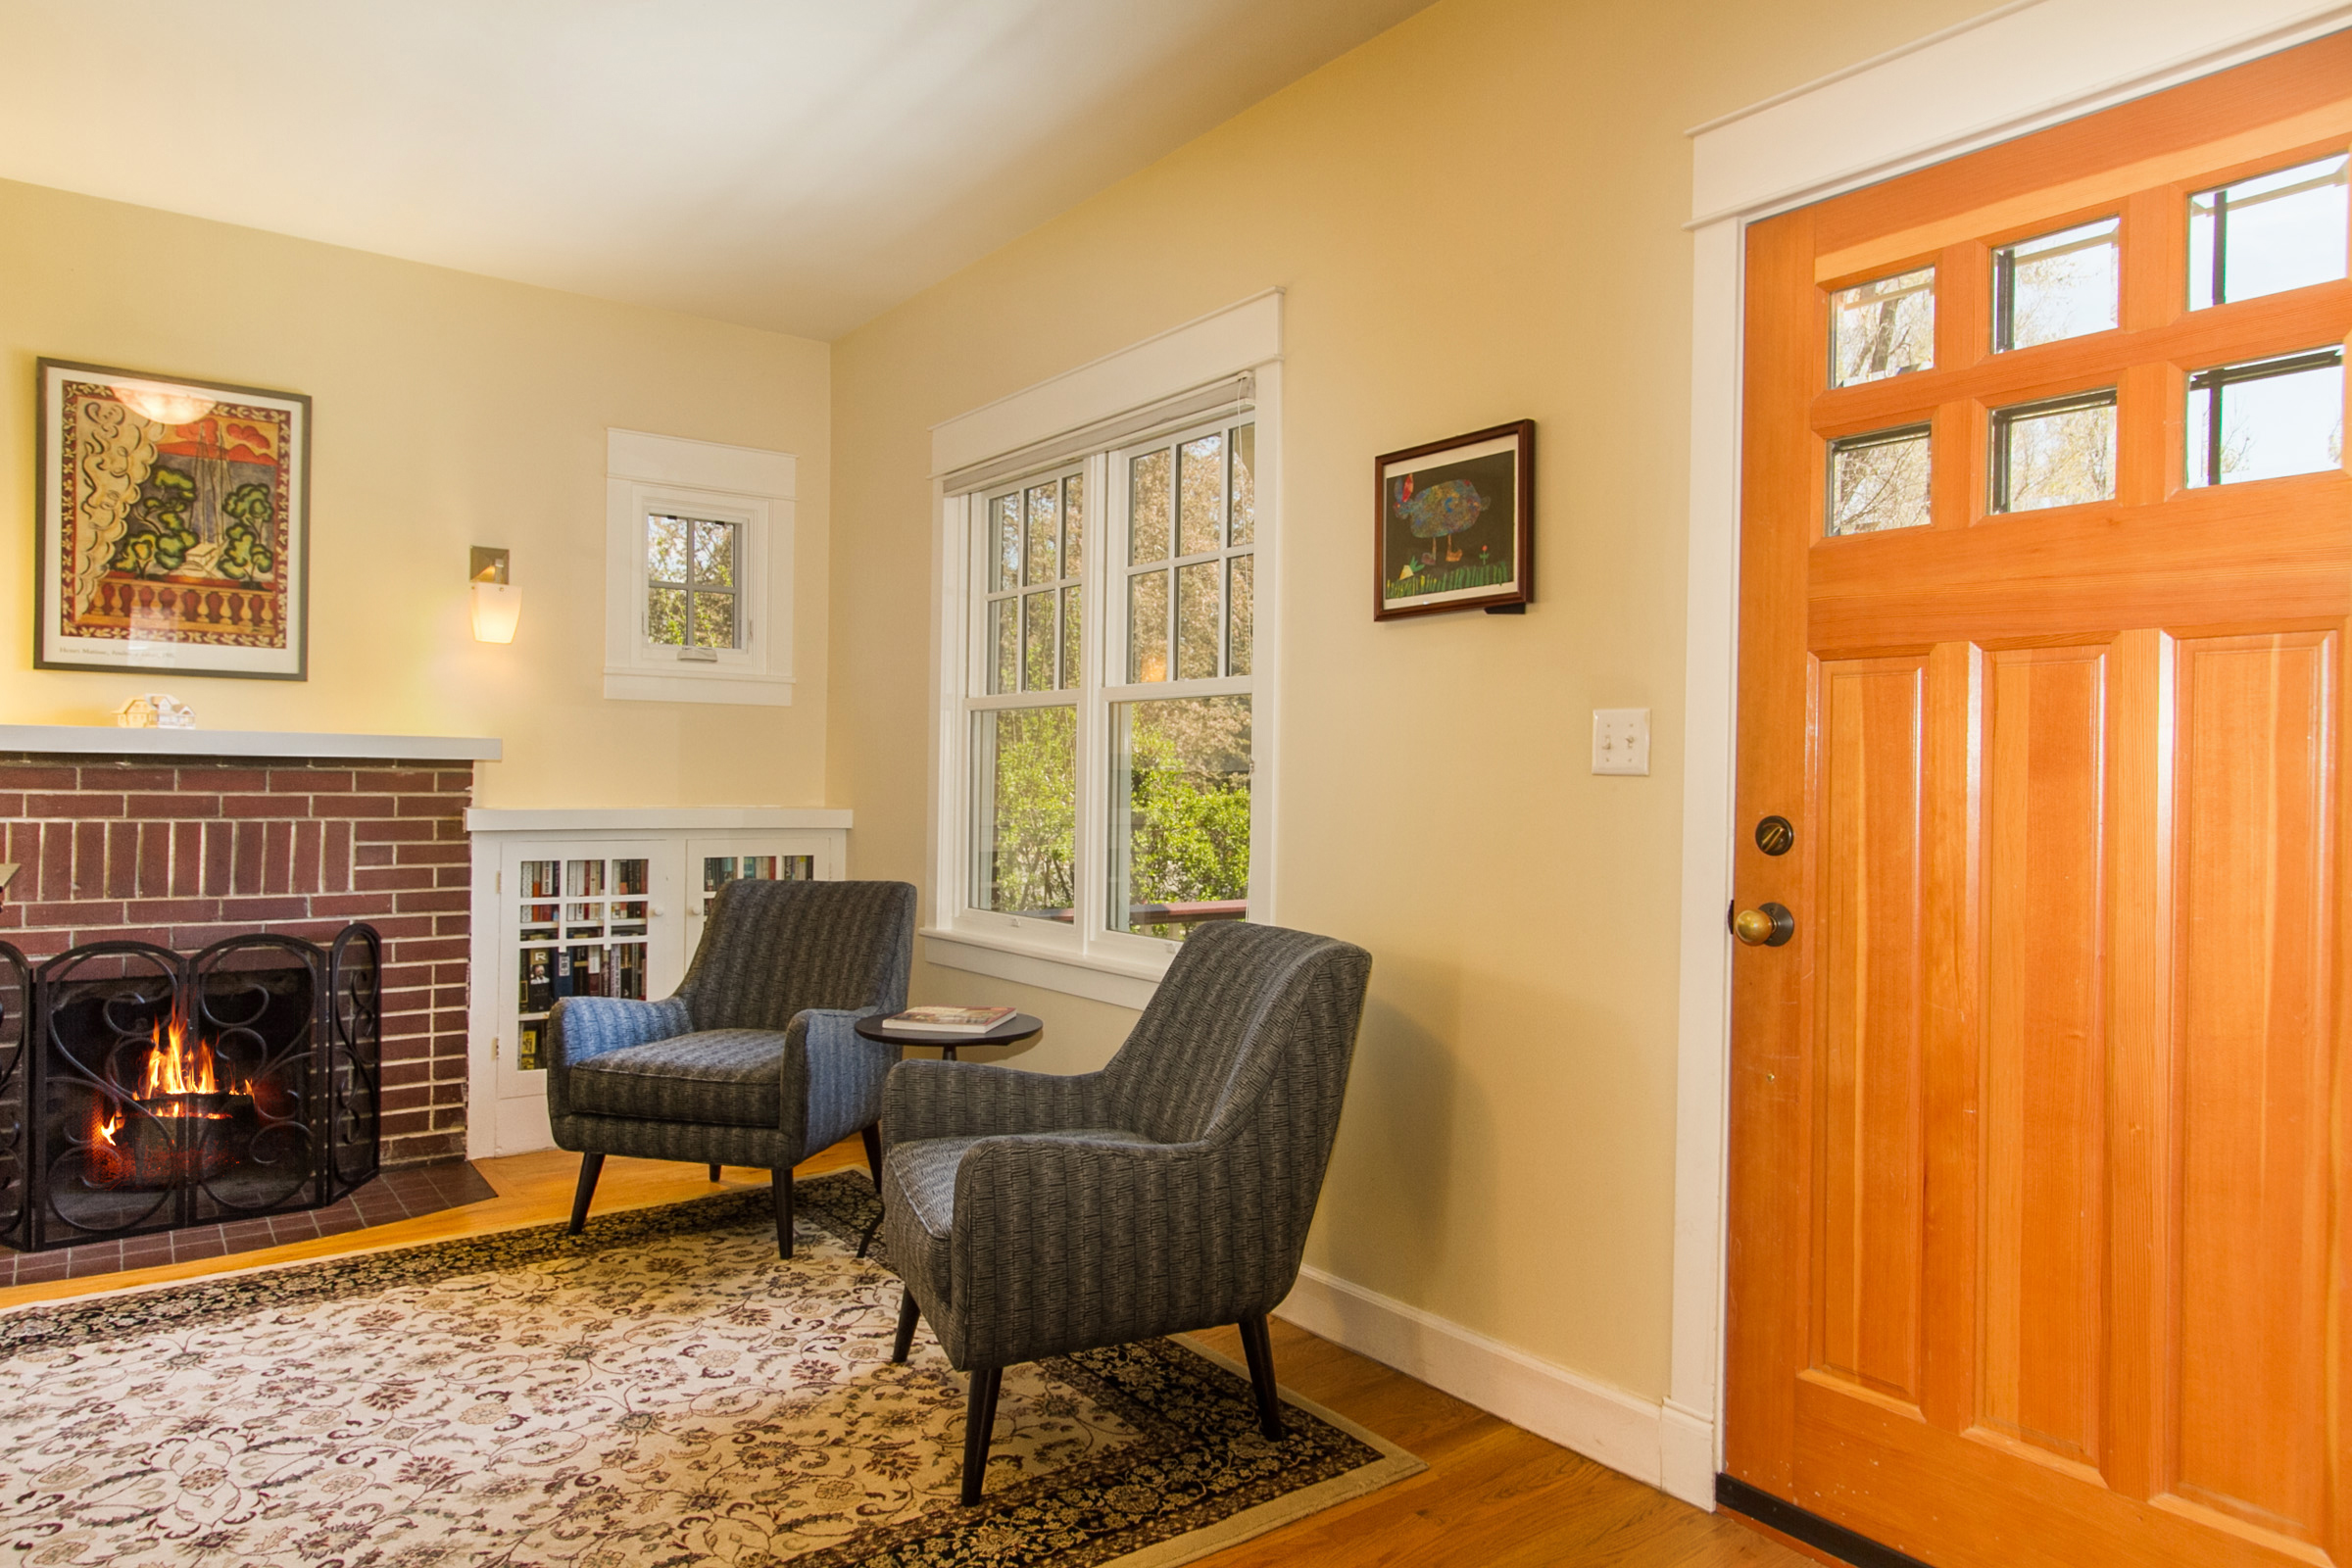 1246091_Foyer-and-Living-room-With-Built-In-Bookcases_high.jpg